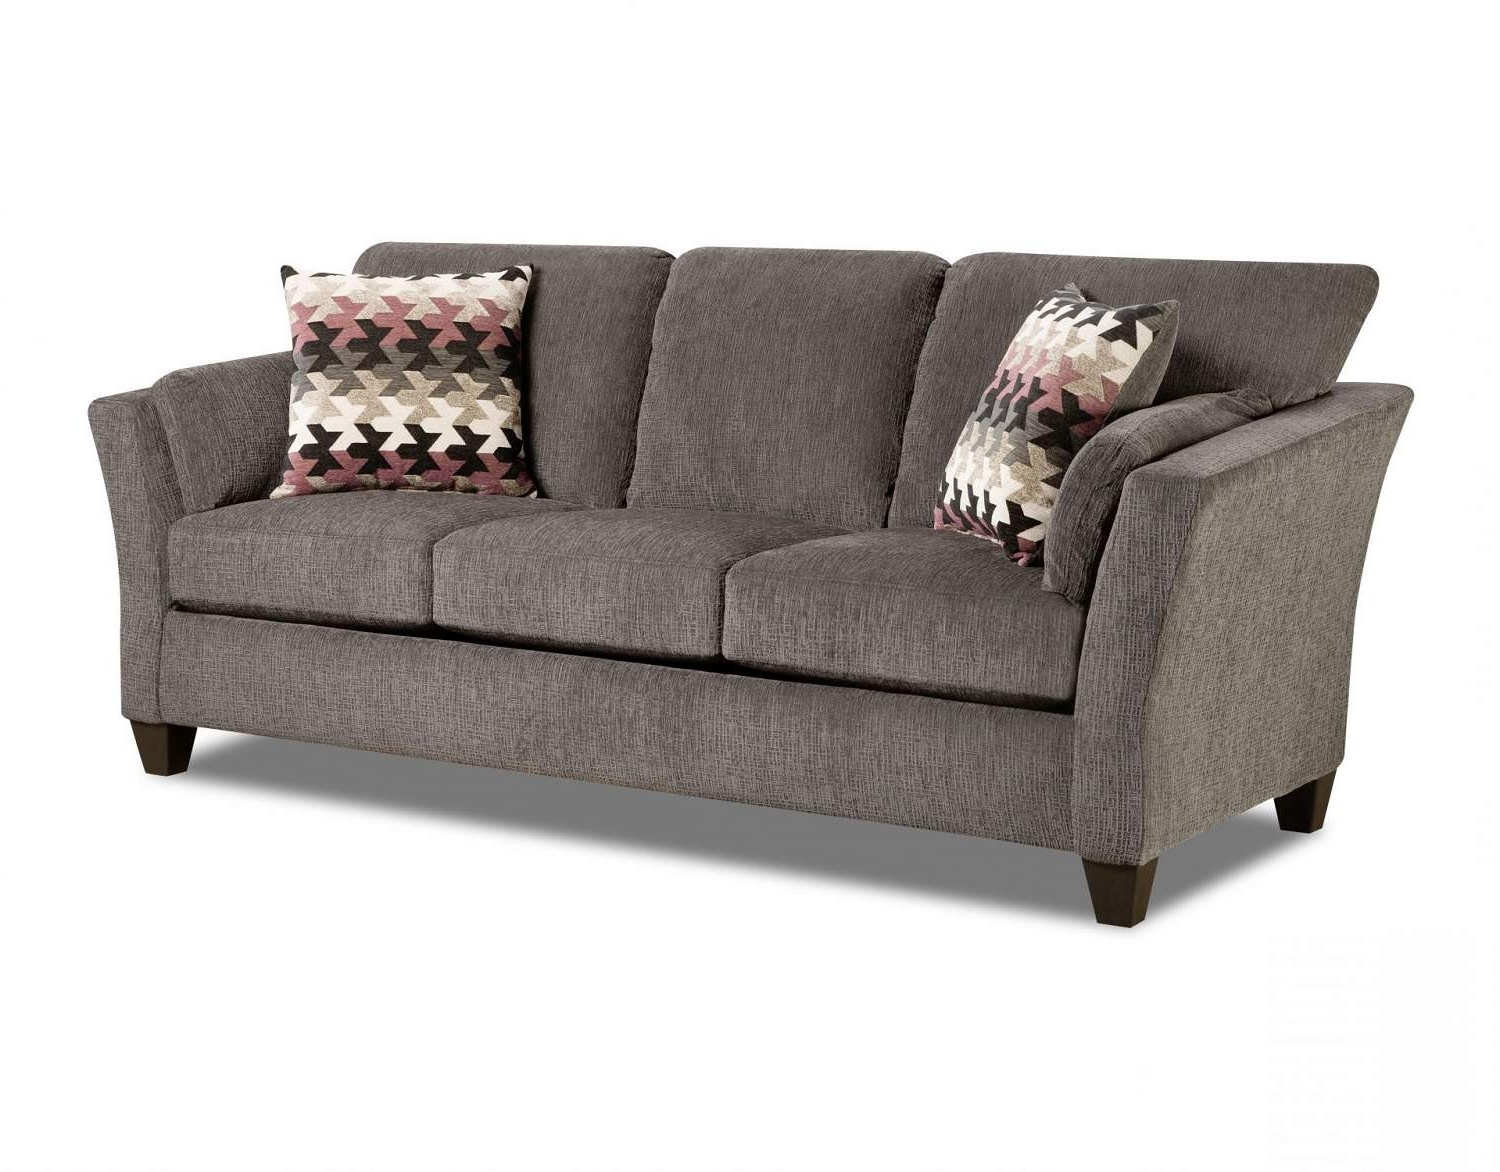 Well Known Joplin Mo Sectional Sofas In Shop Name Brand Sofas, Couches, Loveseats For Less (View 18 of 20)